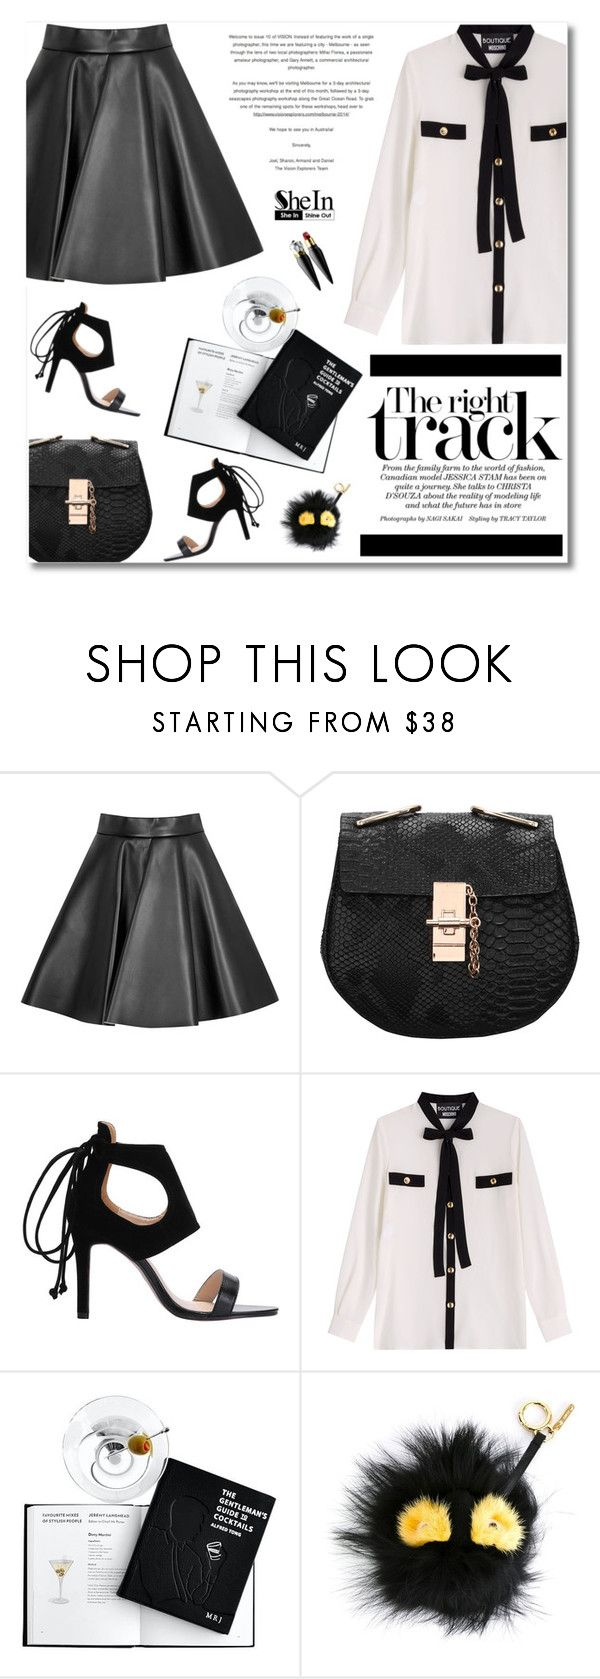 """SheIn"" by defivirda ❤ liked on Polyvore featuring MSGM, Boutique Moschino, Fendi, Christian Louboutin, women's clothing, women's fashion, women, female, woman and misses"